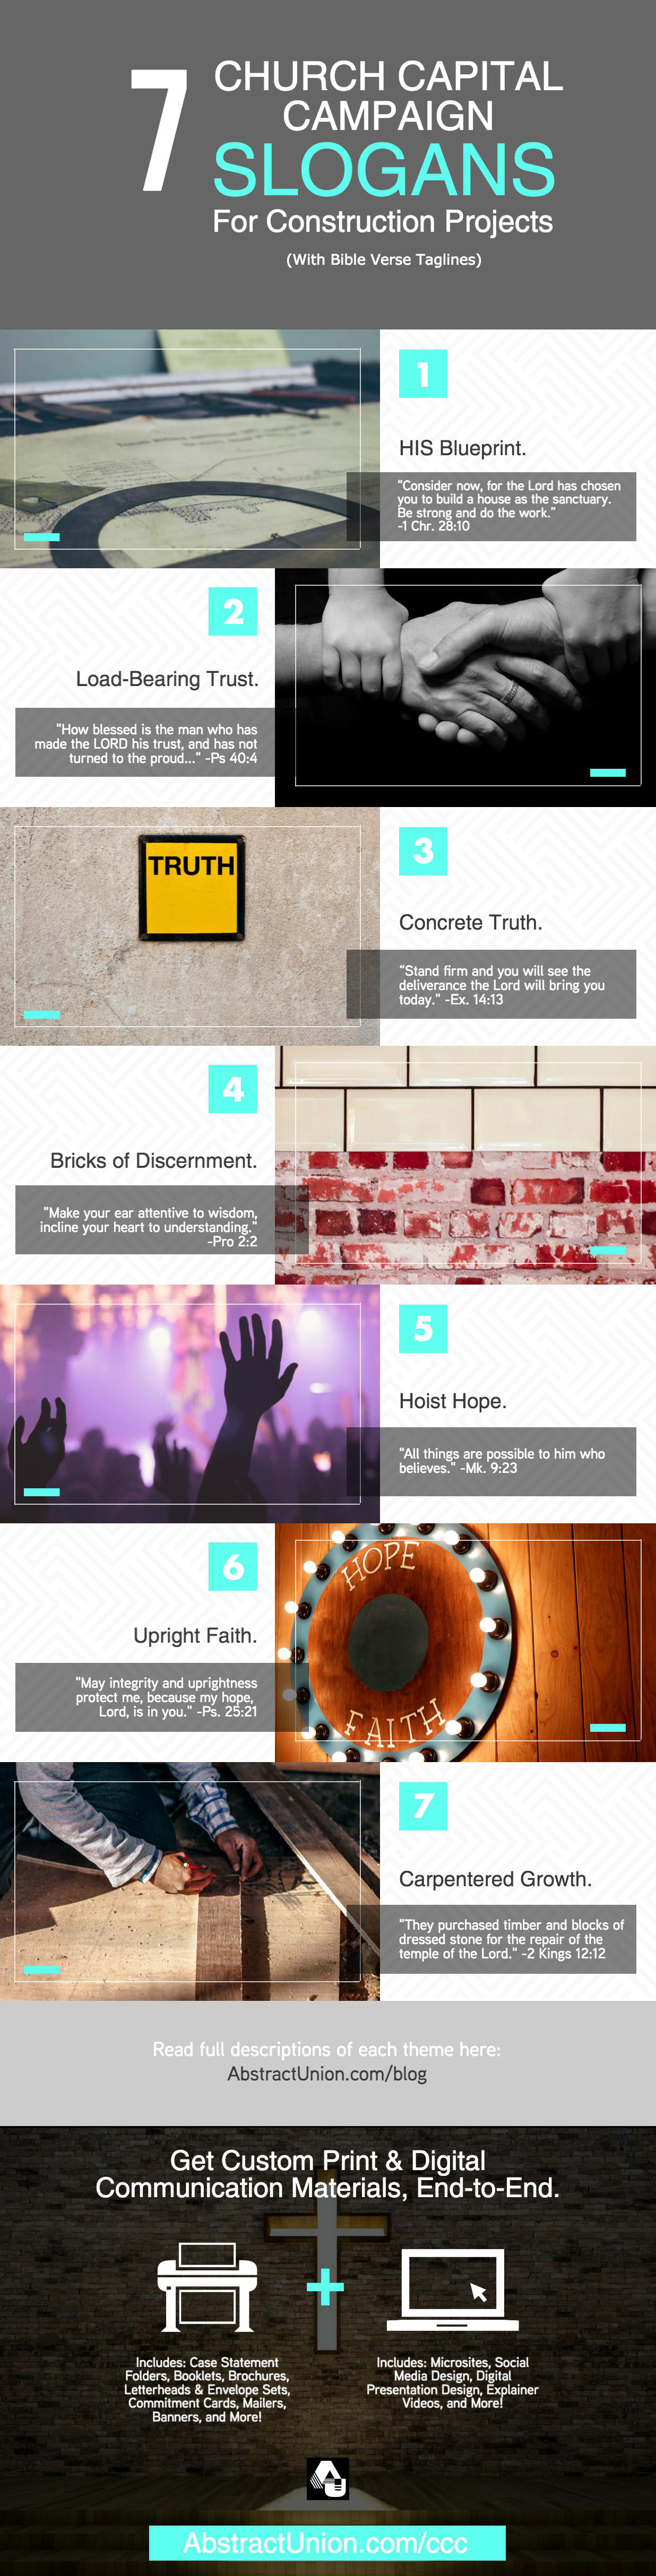 The most constructive list church capital campaign slogans for the most constructive list church capital campaign slogans for your building project click malvernweather Images